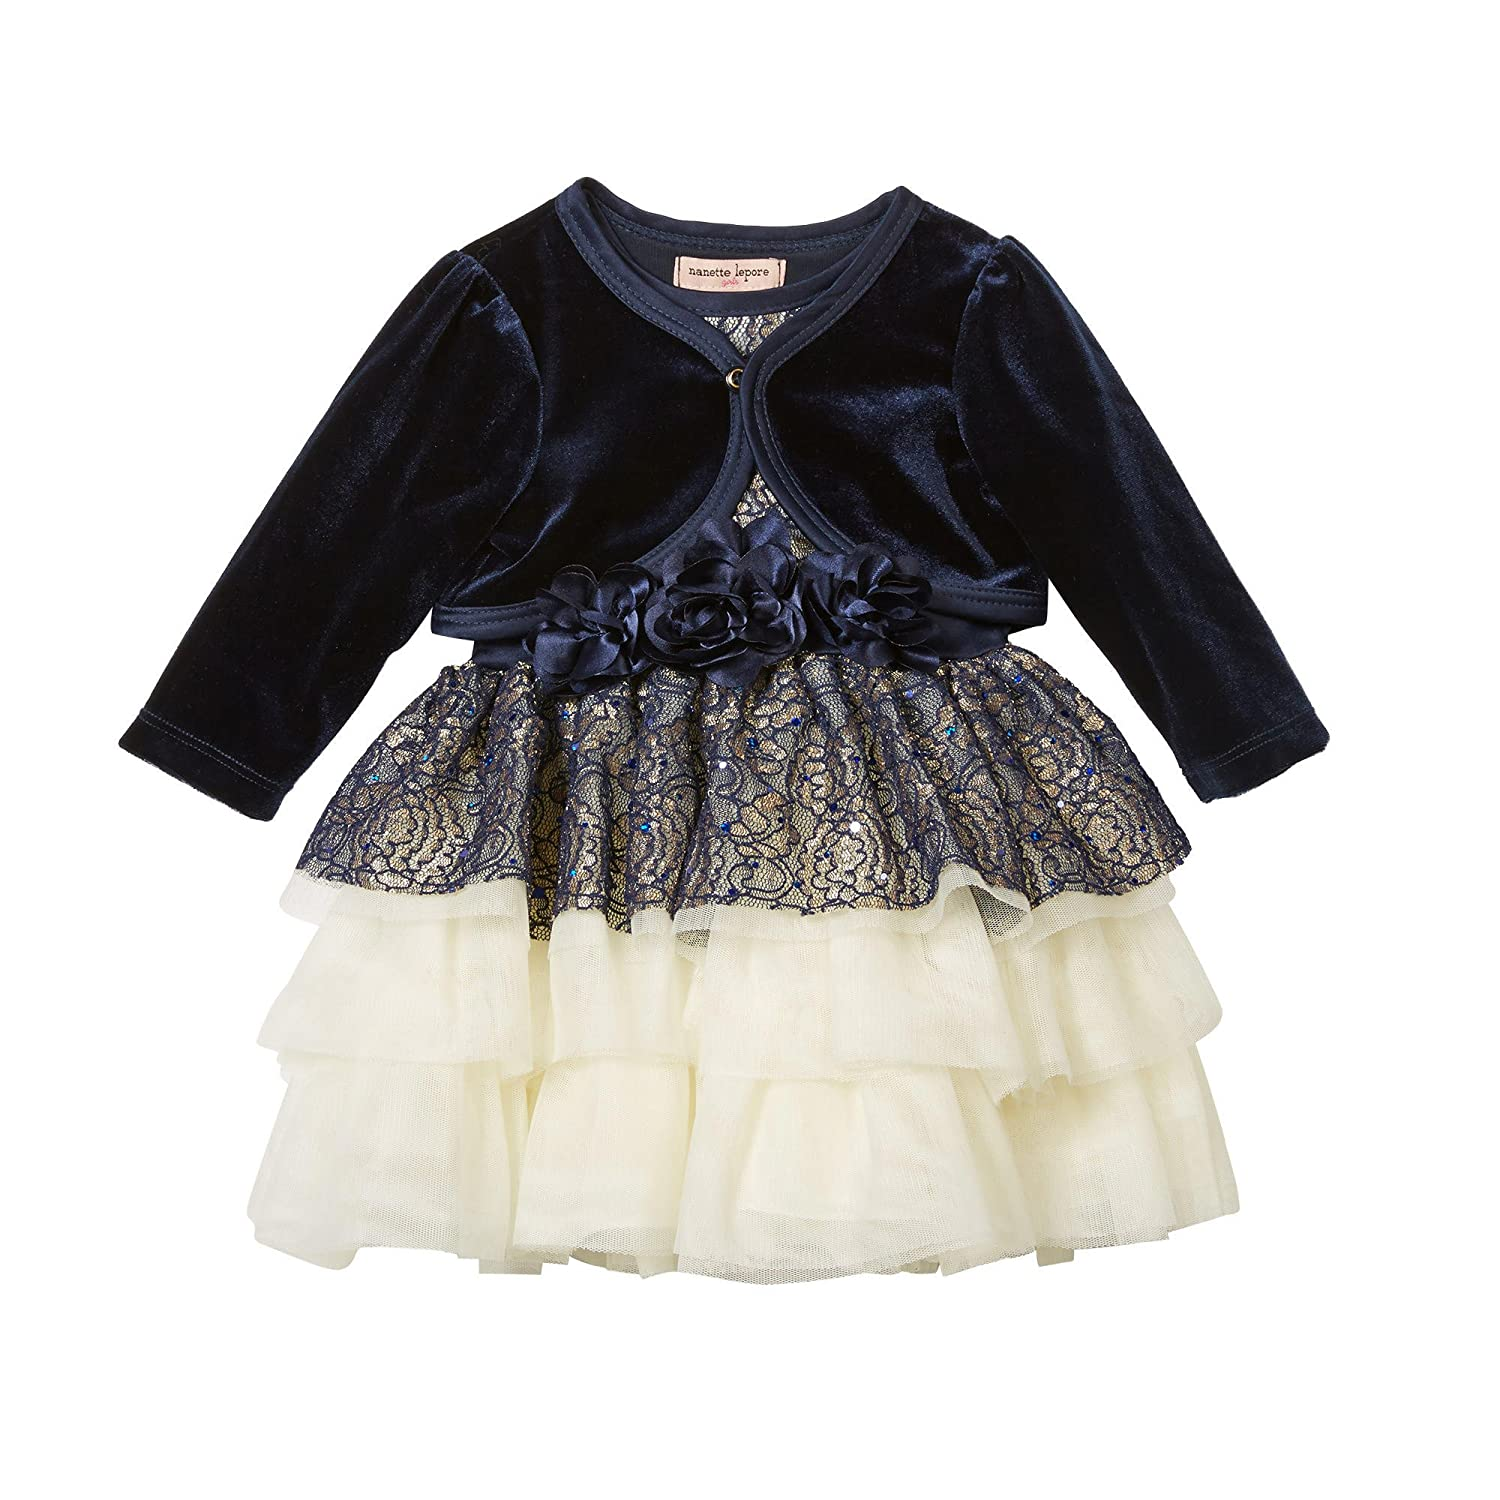 94ecac8cb Amazon.com: Nanette Lepore Baby and Toddler Girls Special Occasion Dress:  Clothing